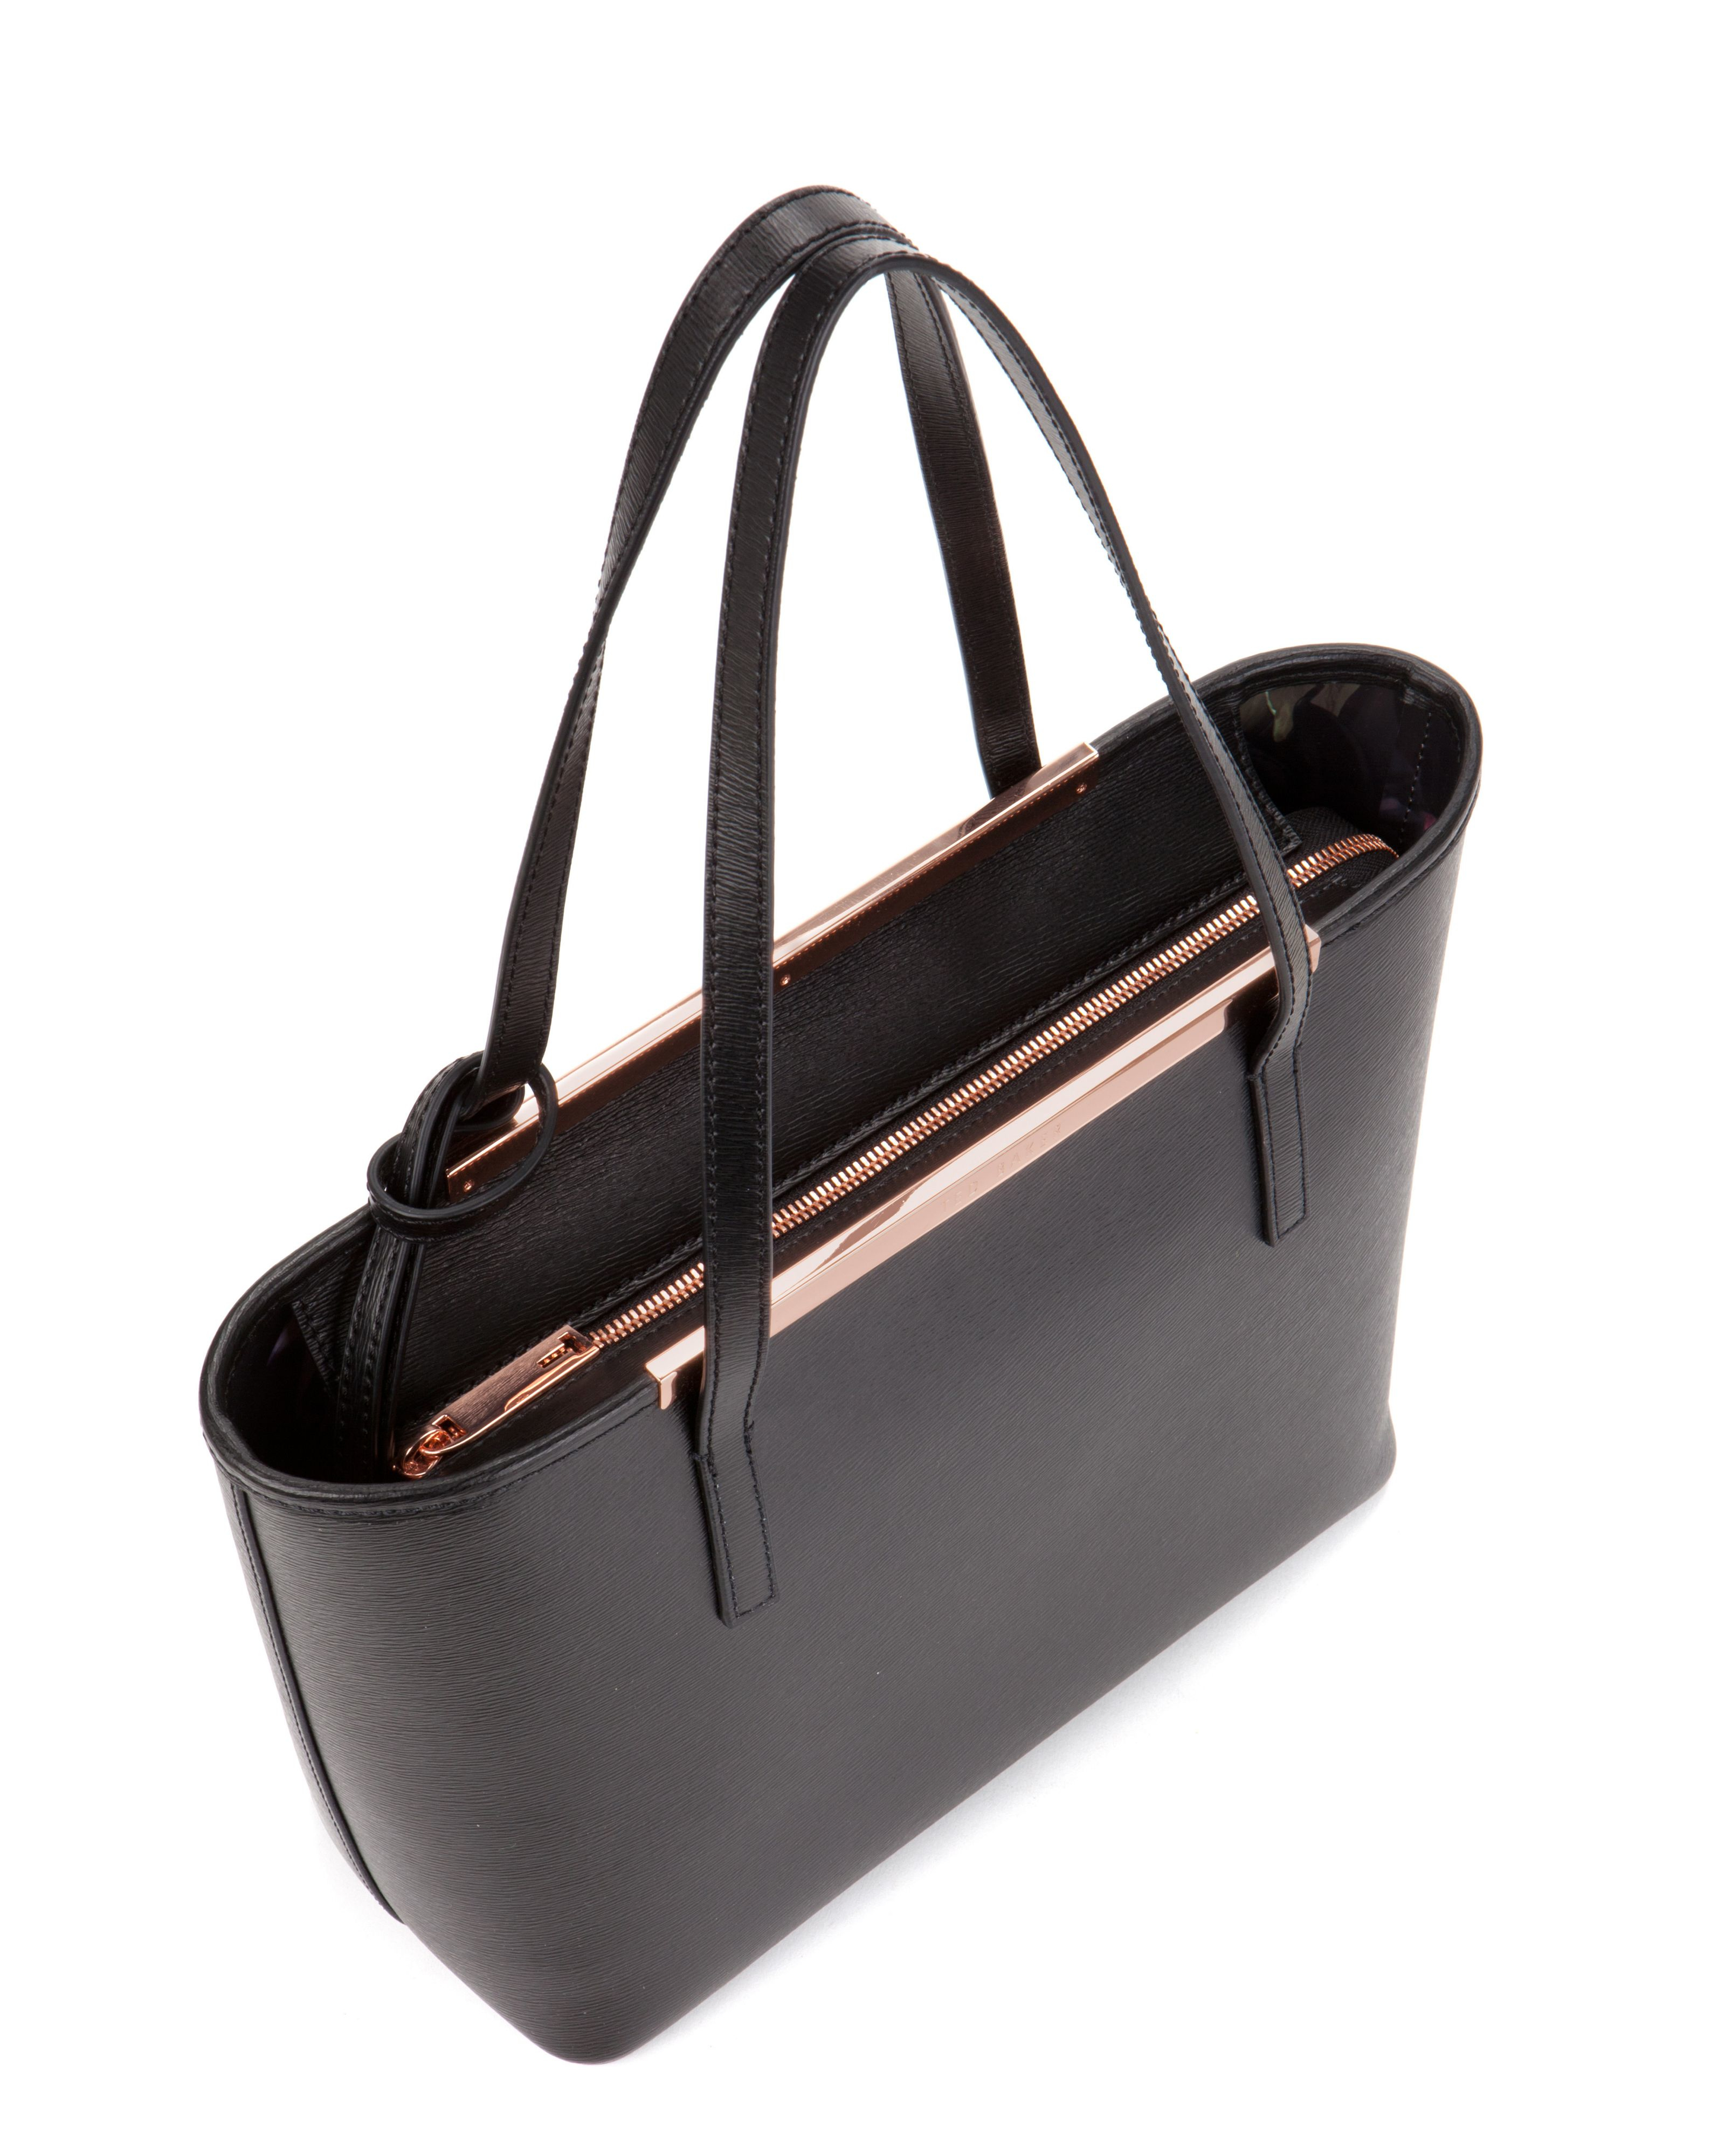 874e2cc48 Ted Baker Black Small Metal Bow Leather Tote Bag - Best Model Bag 2018